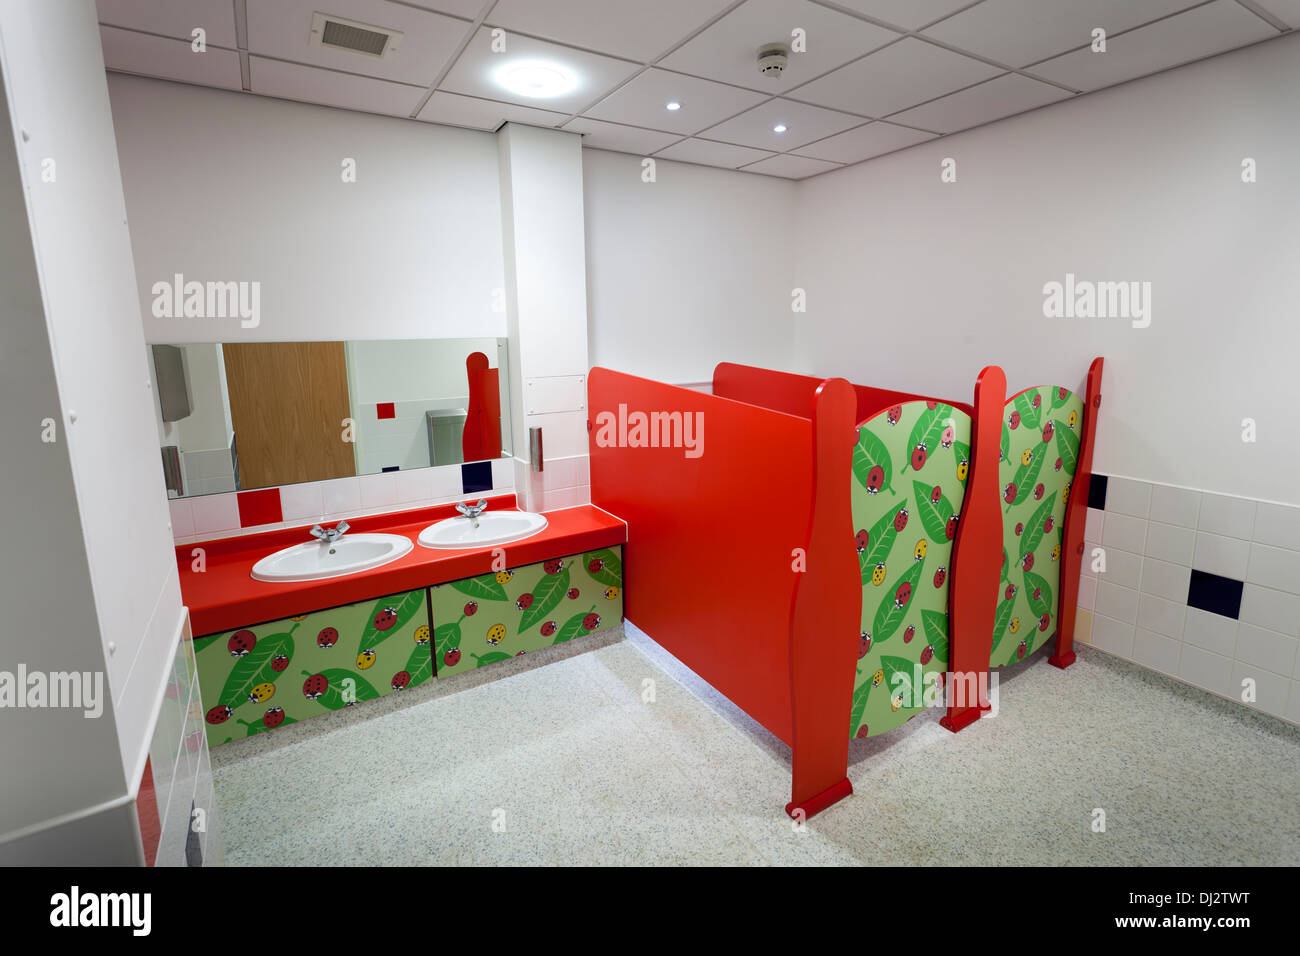 Colourful infants toilets with low walled cubicles and wash basins. - Stock Image